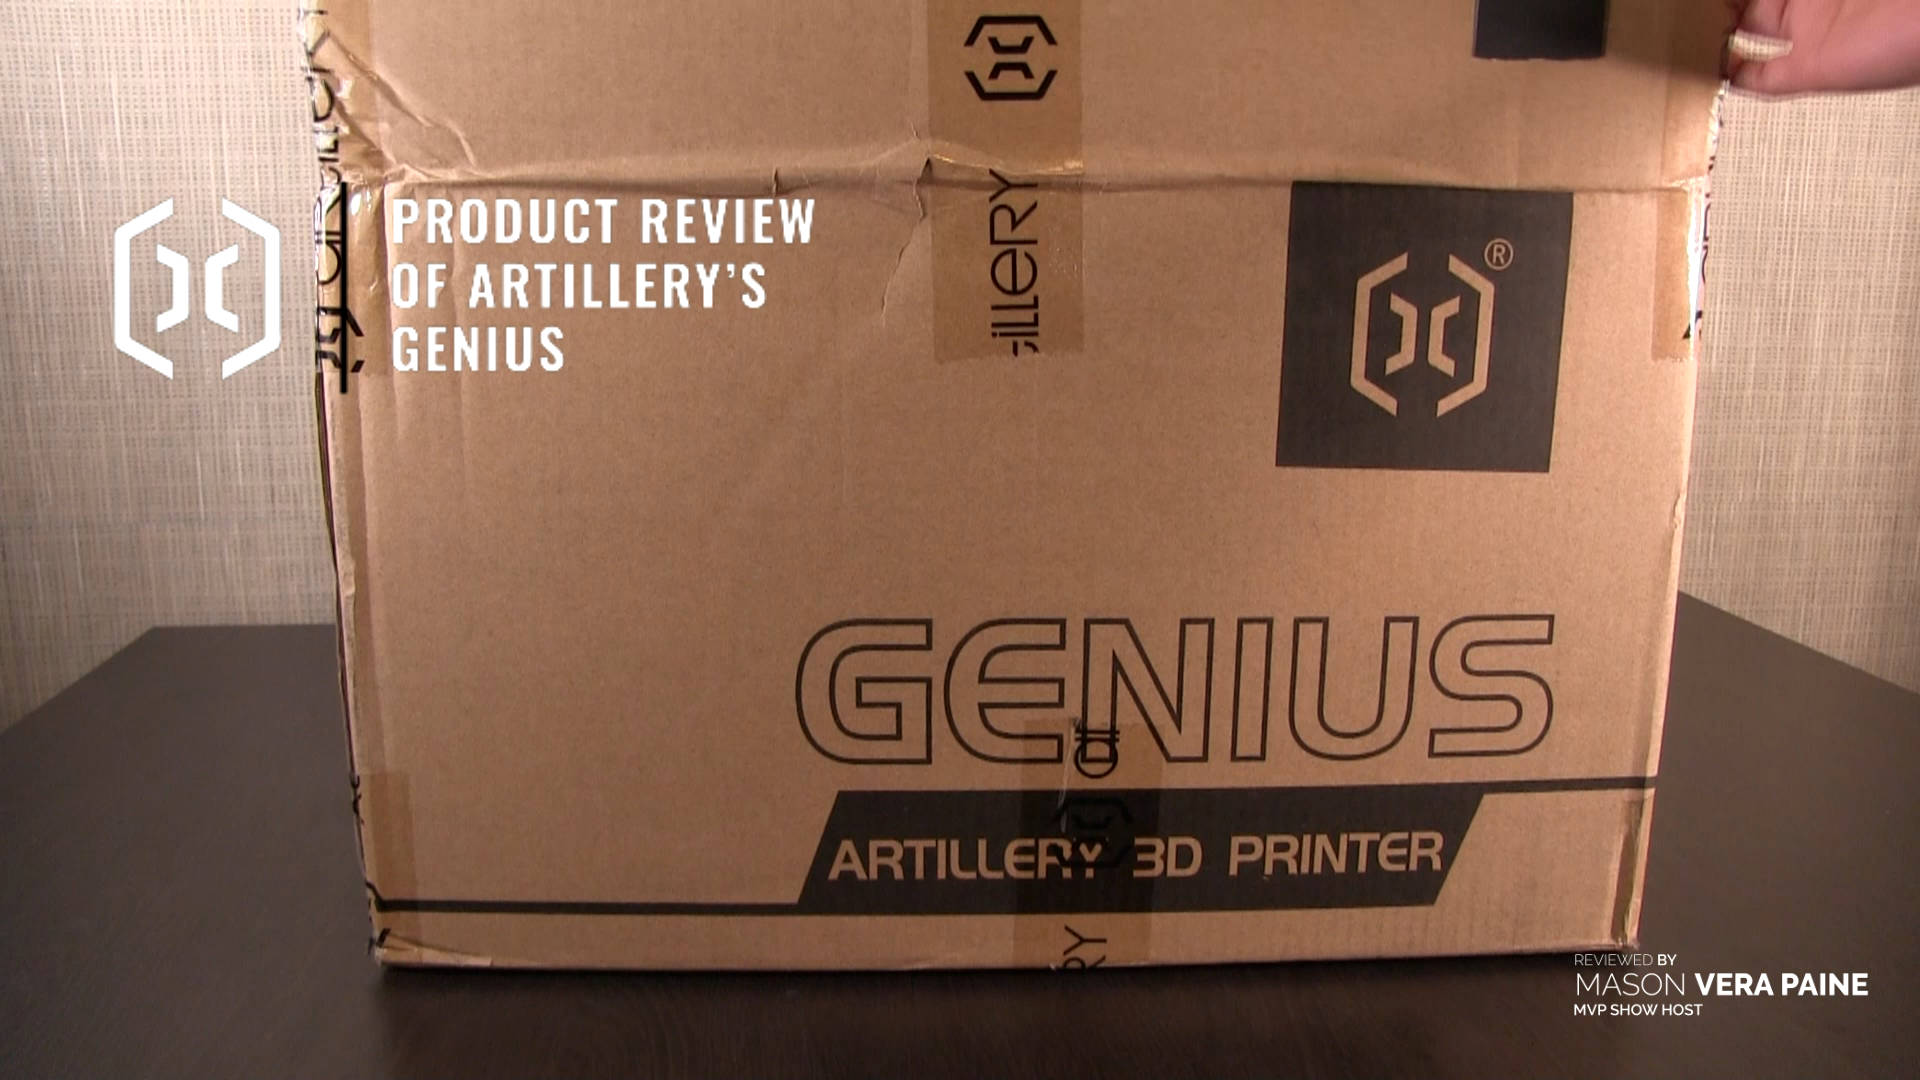 Artillery Genius 3D printer, Artillery Genius 3D printer review, Filament, Three-dimensional Technology, Artillery Genius Printer, 3D printer price, best 3D printer, Artillery Genius 3D, Genius Artillery, Artillery Genius test, Mason Paine, MVP Show, Team MVP, Millennial, Unabridged Millennial